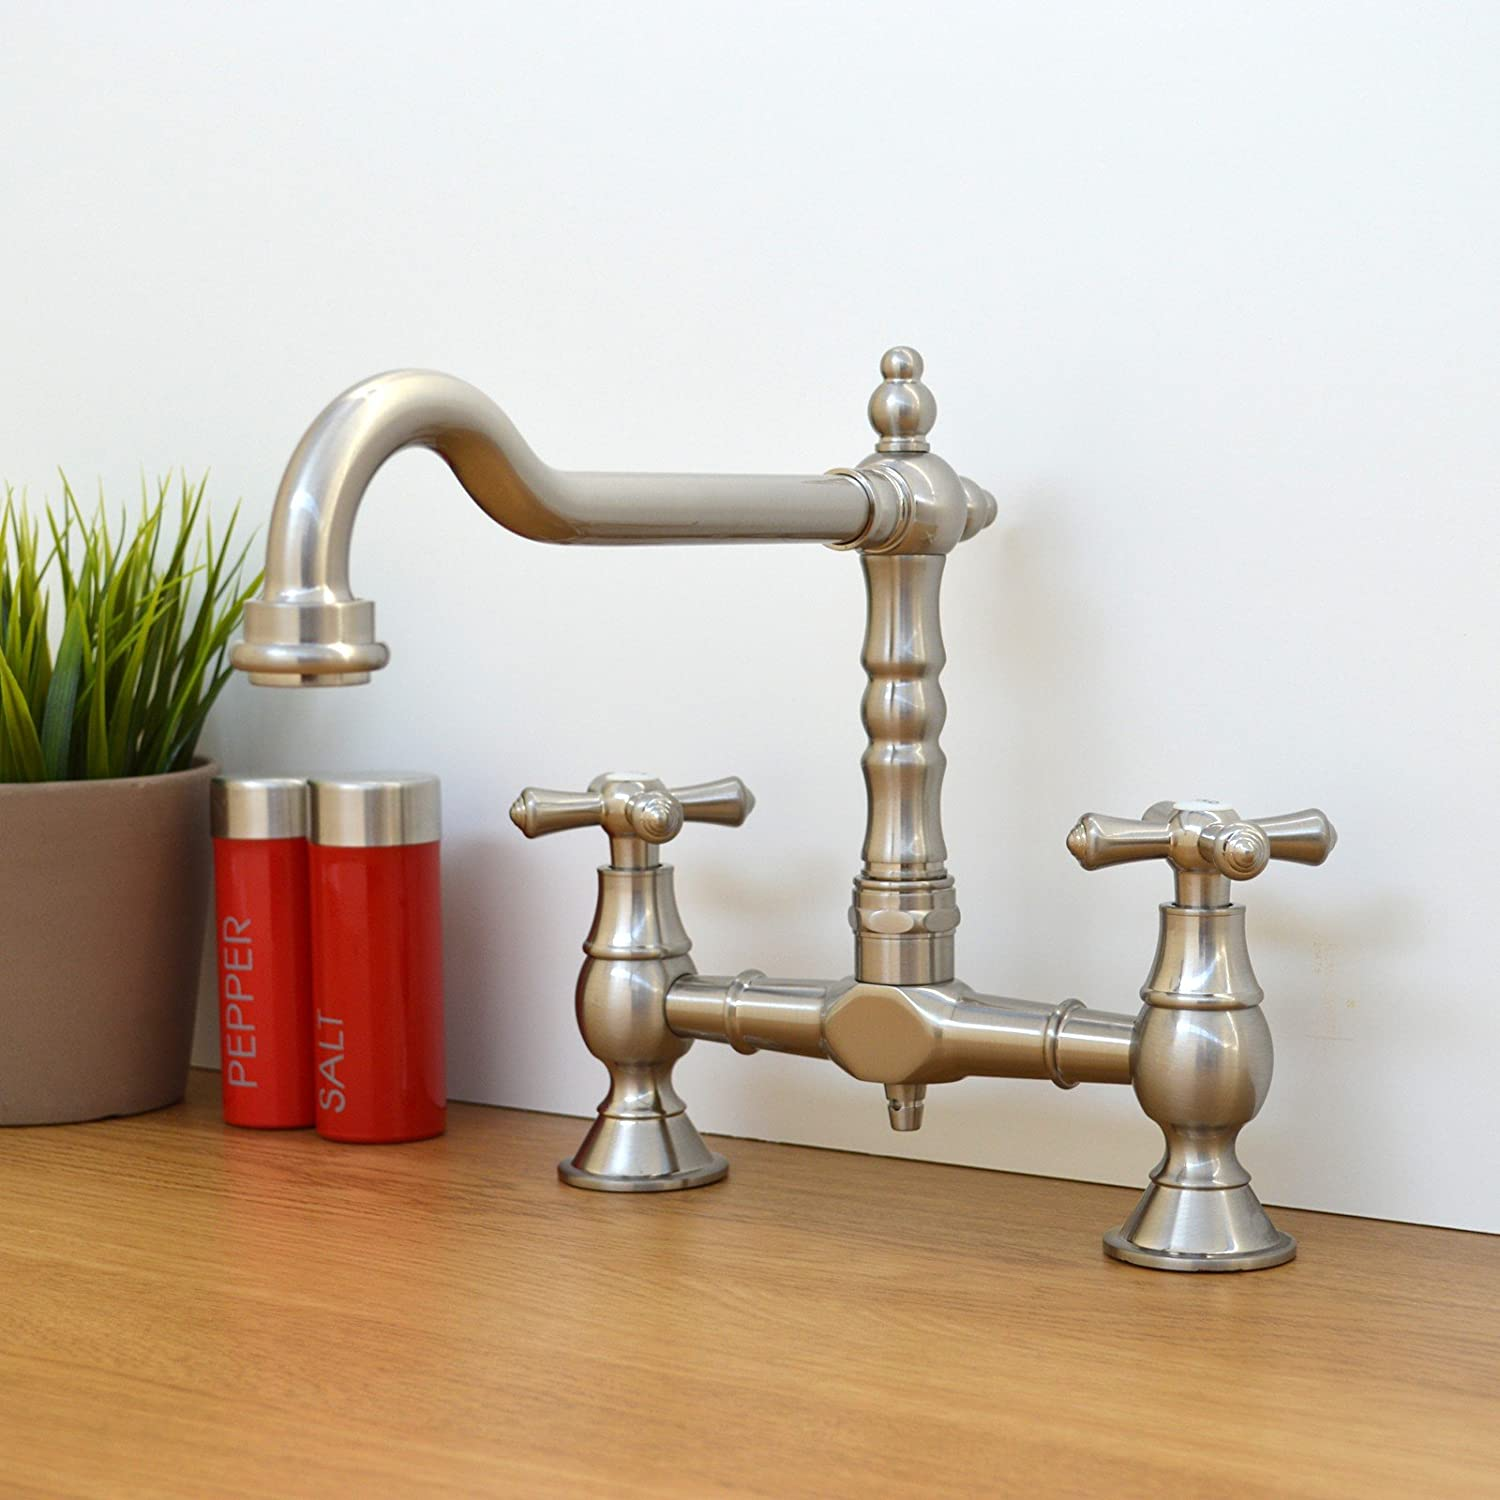 BE colonial kitchen sink ENKI Traditional Colonial Bridge Kitchen Sink Mixer Tap Cross Knobs Handles Brushed Nickel LANGLEY